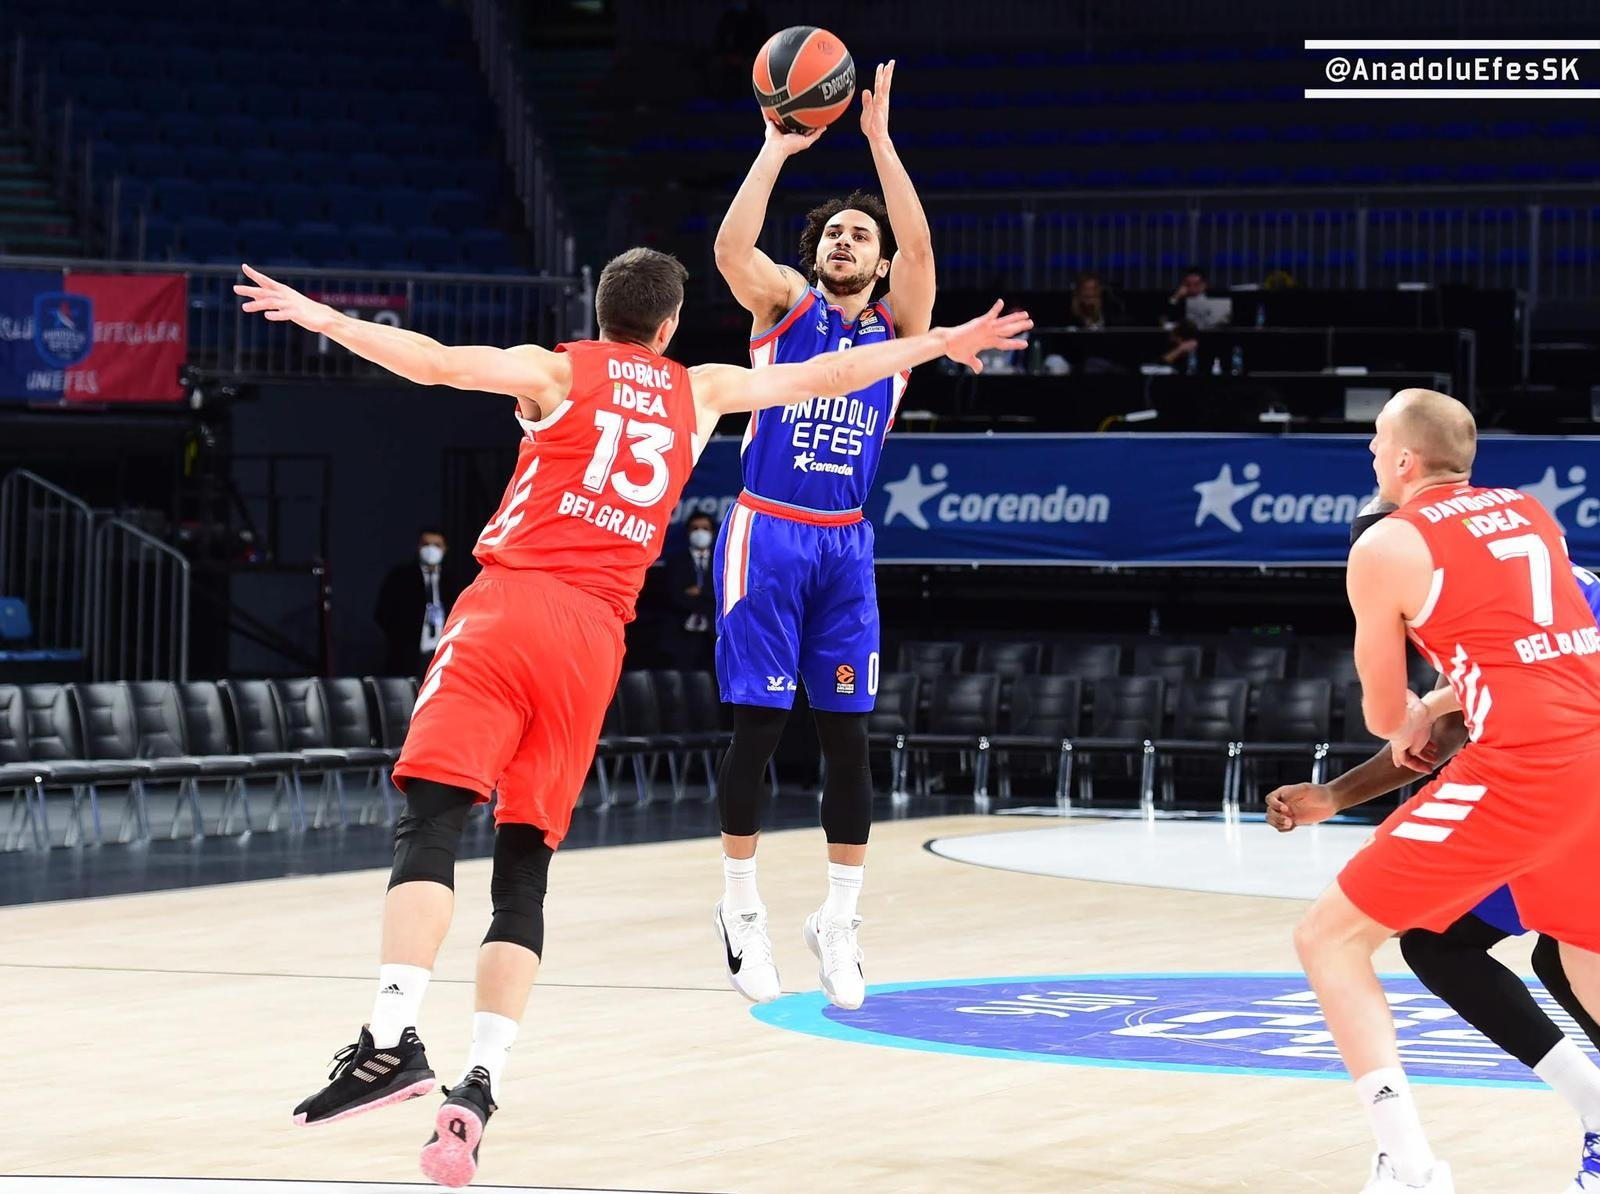 Anadolu Efes' point guard Shane Larkin (C) shoots against Crvena Zvezda in a THY EuropeaLeague match at the Sinan Erdem Sports Center, Istanbul, Turkey, Jan. 26, 2021.